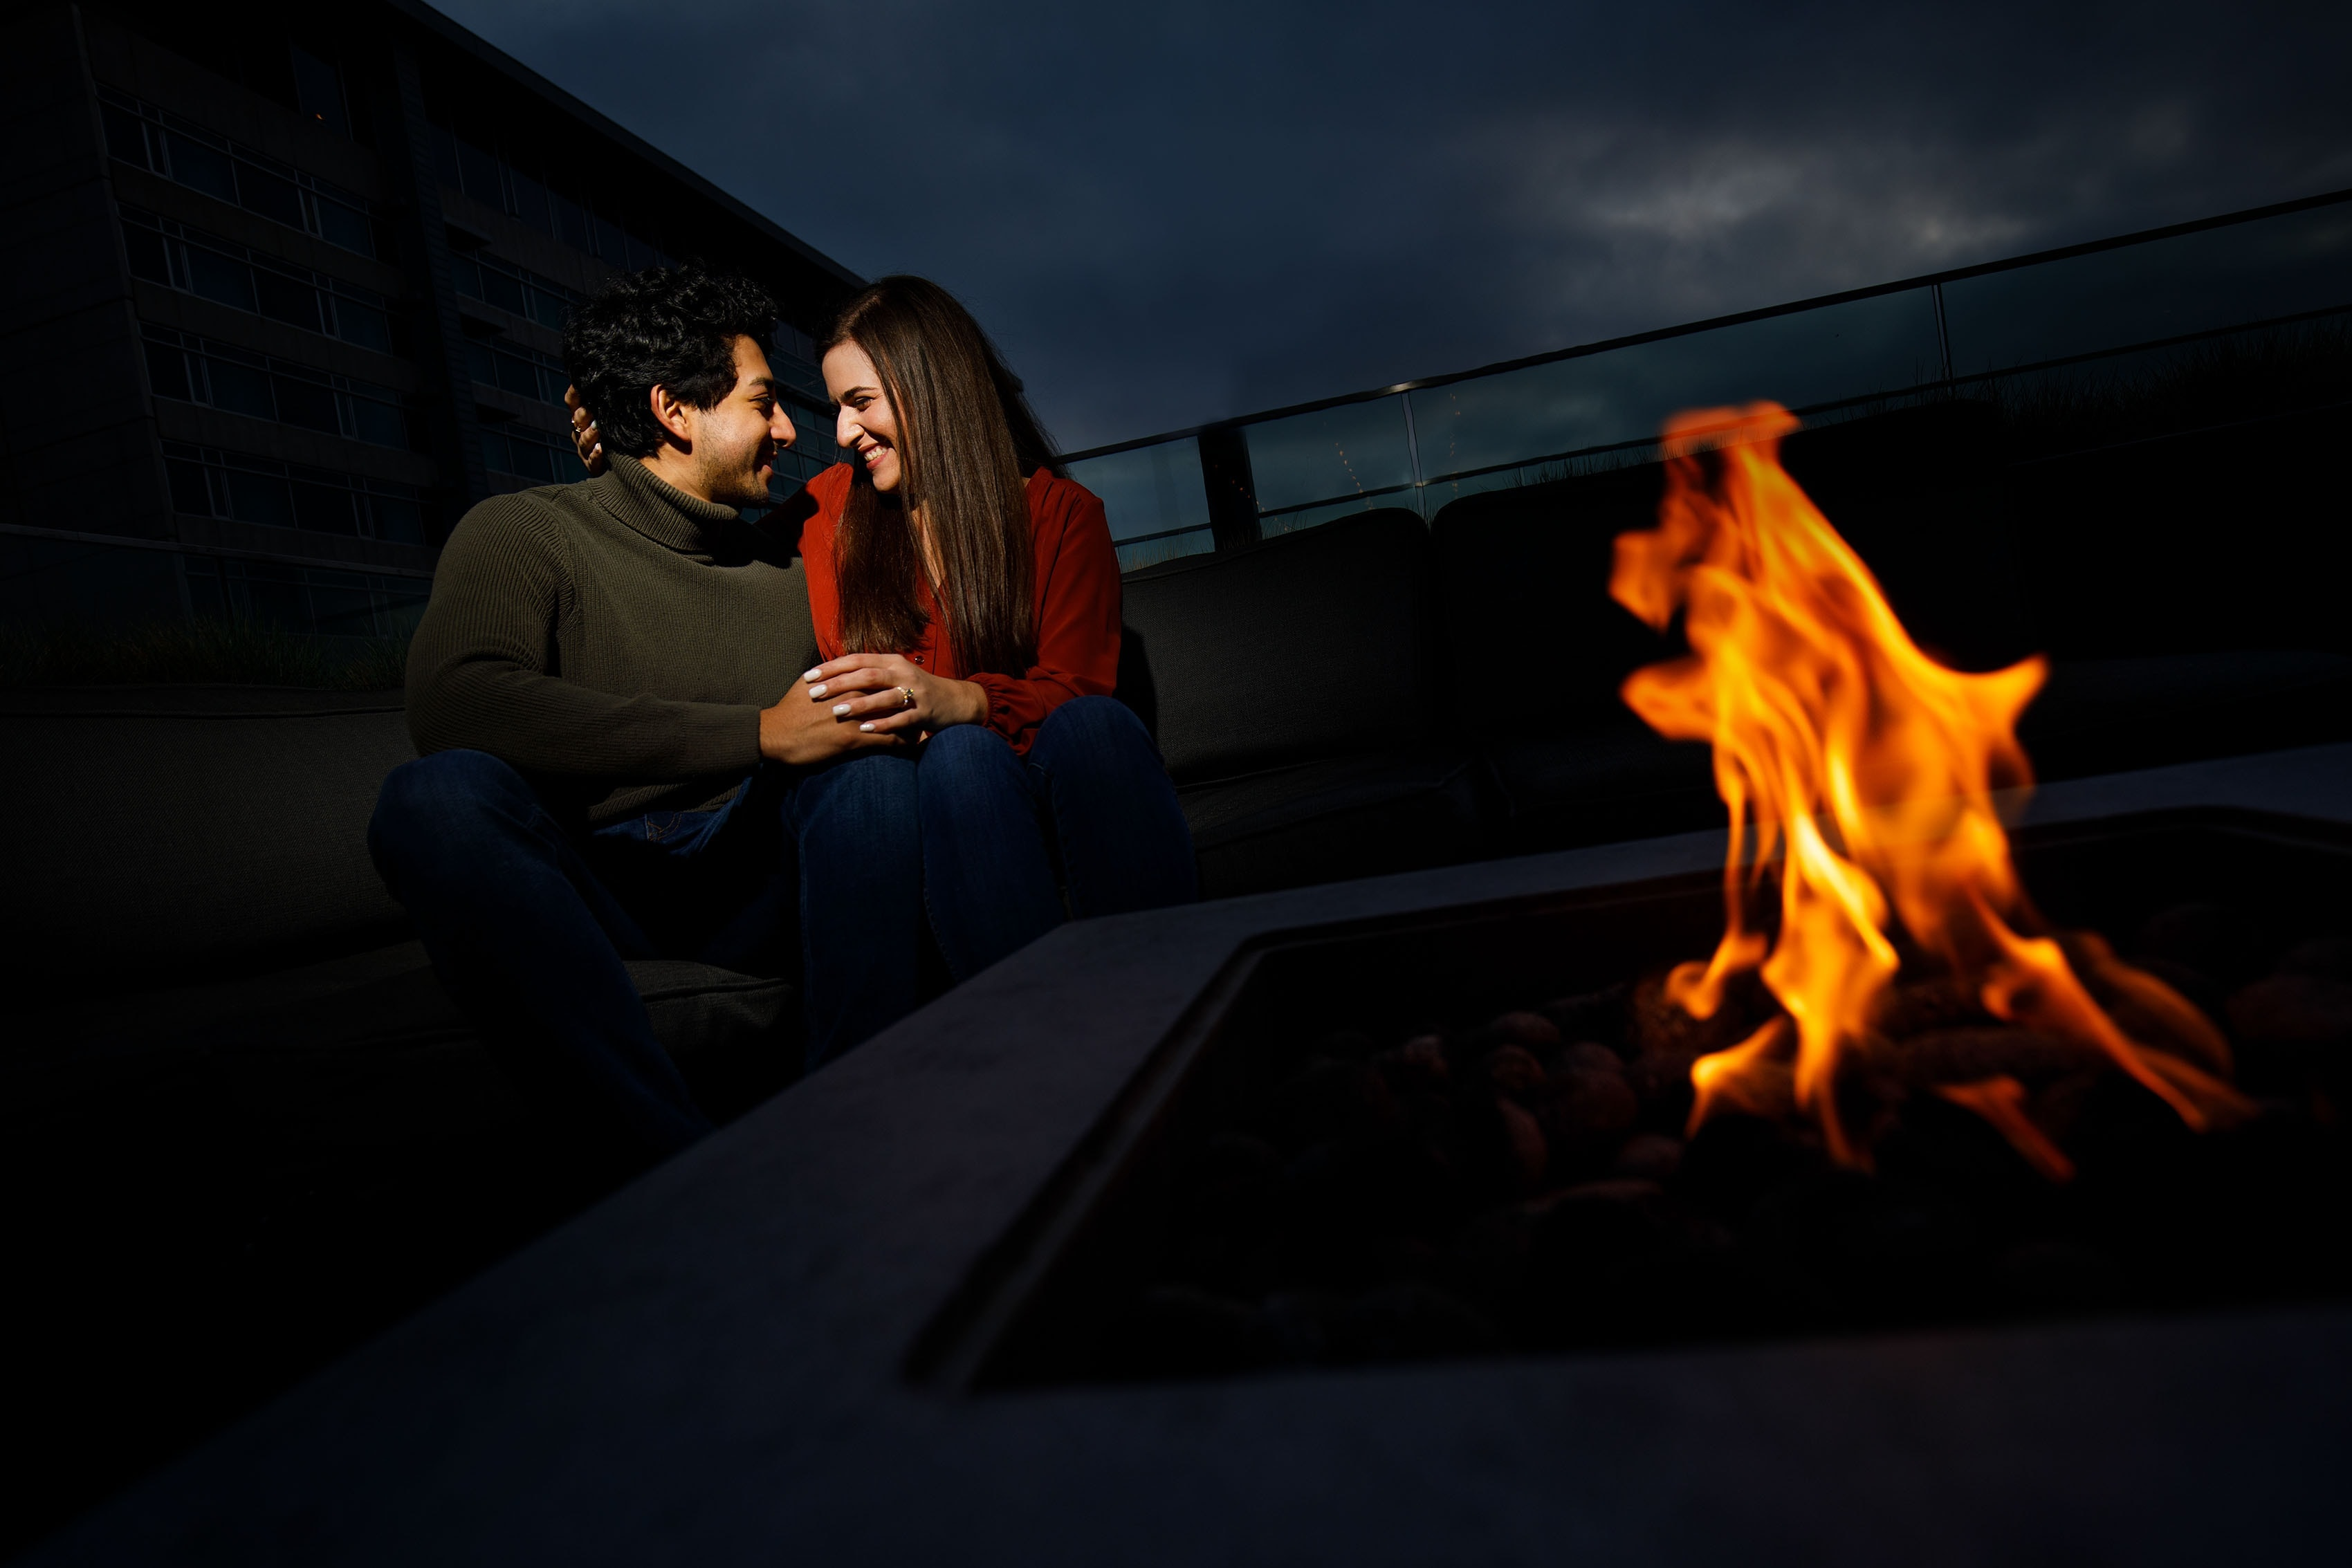 Kooper and Raul share a moment by the fire pit at 54thirty rooftop bar in Denver after their proposal